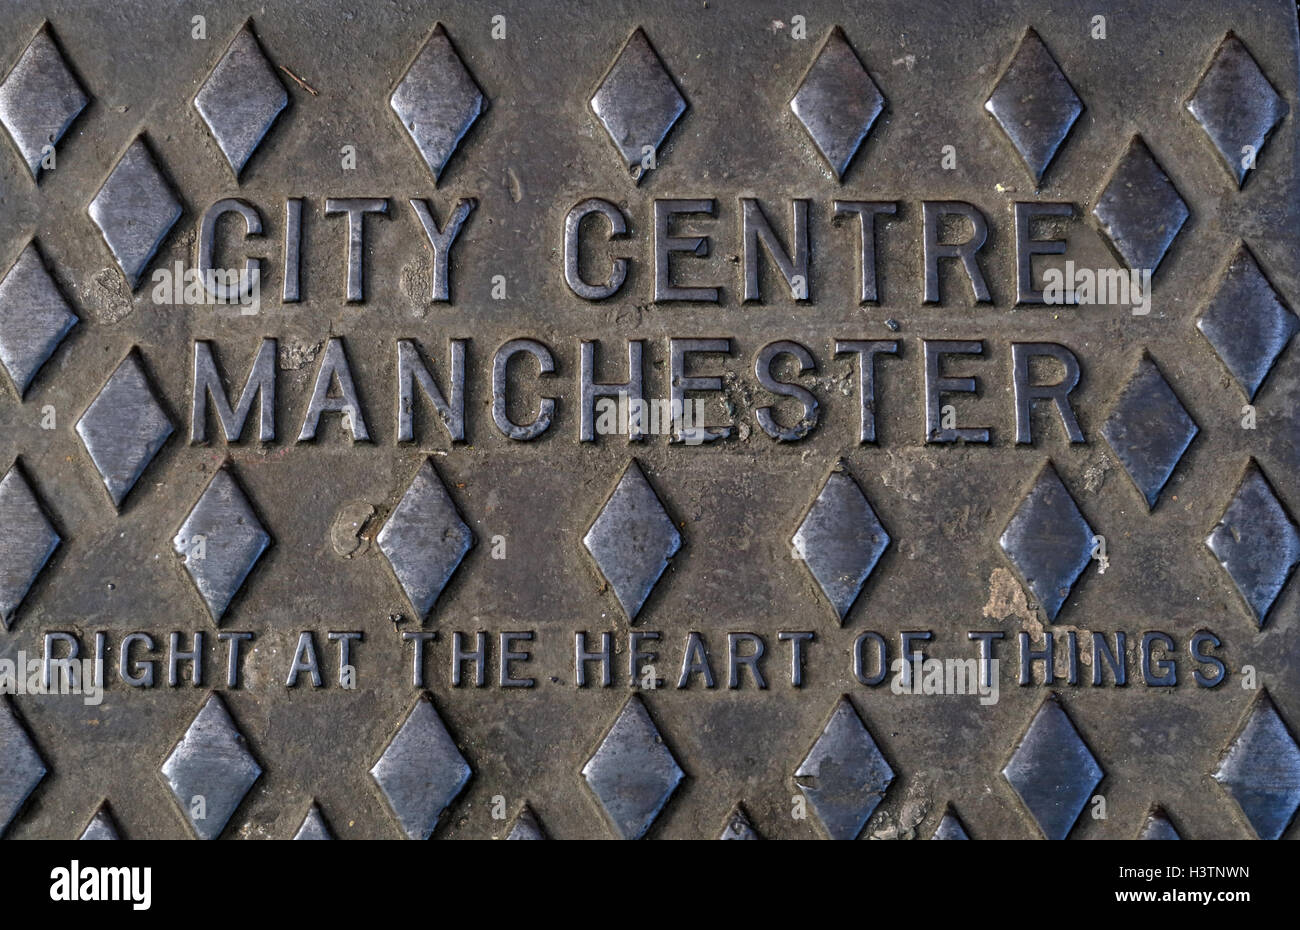 Gay,Village,Manhole,Man,hole,iron,steel,metal,icon,logo,things,Northern,Powerhouse,diamond,pattern,Canal,Street,st,LGBT,Manchester Sewer,Manchester Grid,Right,at,the,heart,of,things,Northern Powerhouse,City Centre Manchester,Manchester City,Canal St,GoTonySmith,@HotpixUK,Tony,Smith,UK,GB,Great,Britain,United,Kingdom,English,British,England,man,hole,cast,iron,access,iron,cast iron,metal,steel,@HotpixUK,road,street,grid,in,road,street,Water works,access,access cover,sewer,manhole,Buy Pictures of,Buy Images Of,Images of,Stock Images,Tony Smith,United Kingdom,Great Britain,British Isles